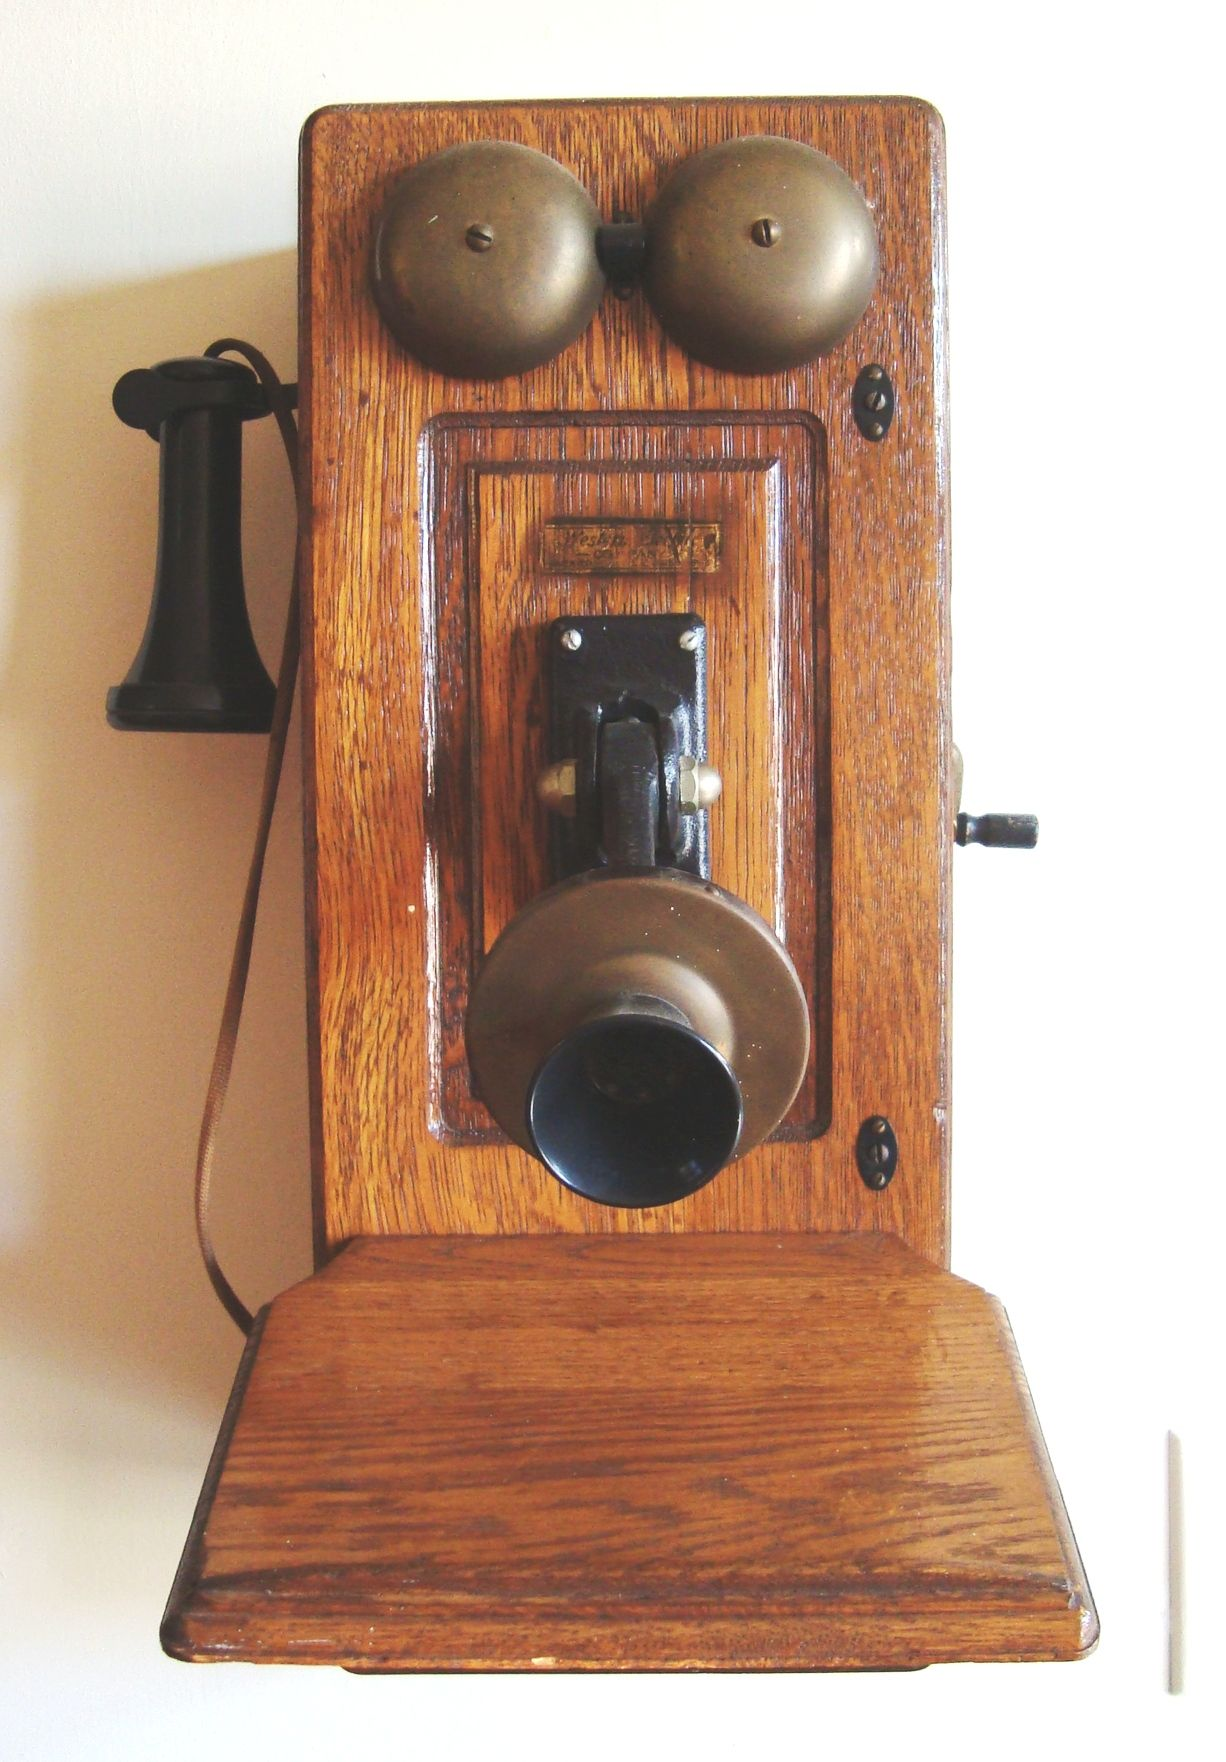 A turn of the century telephone. The telephone was an